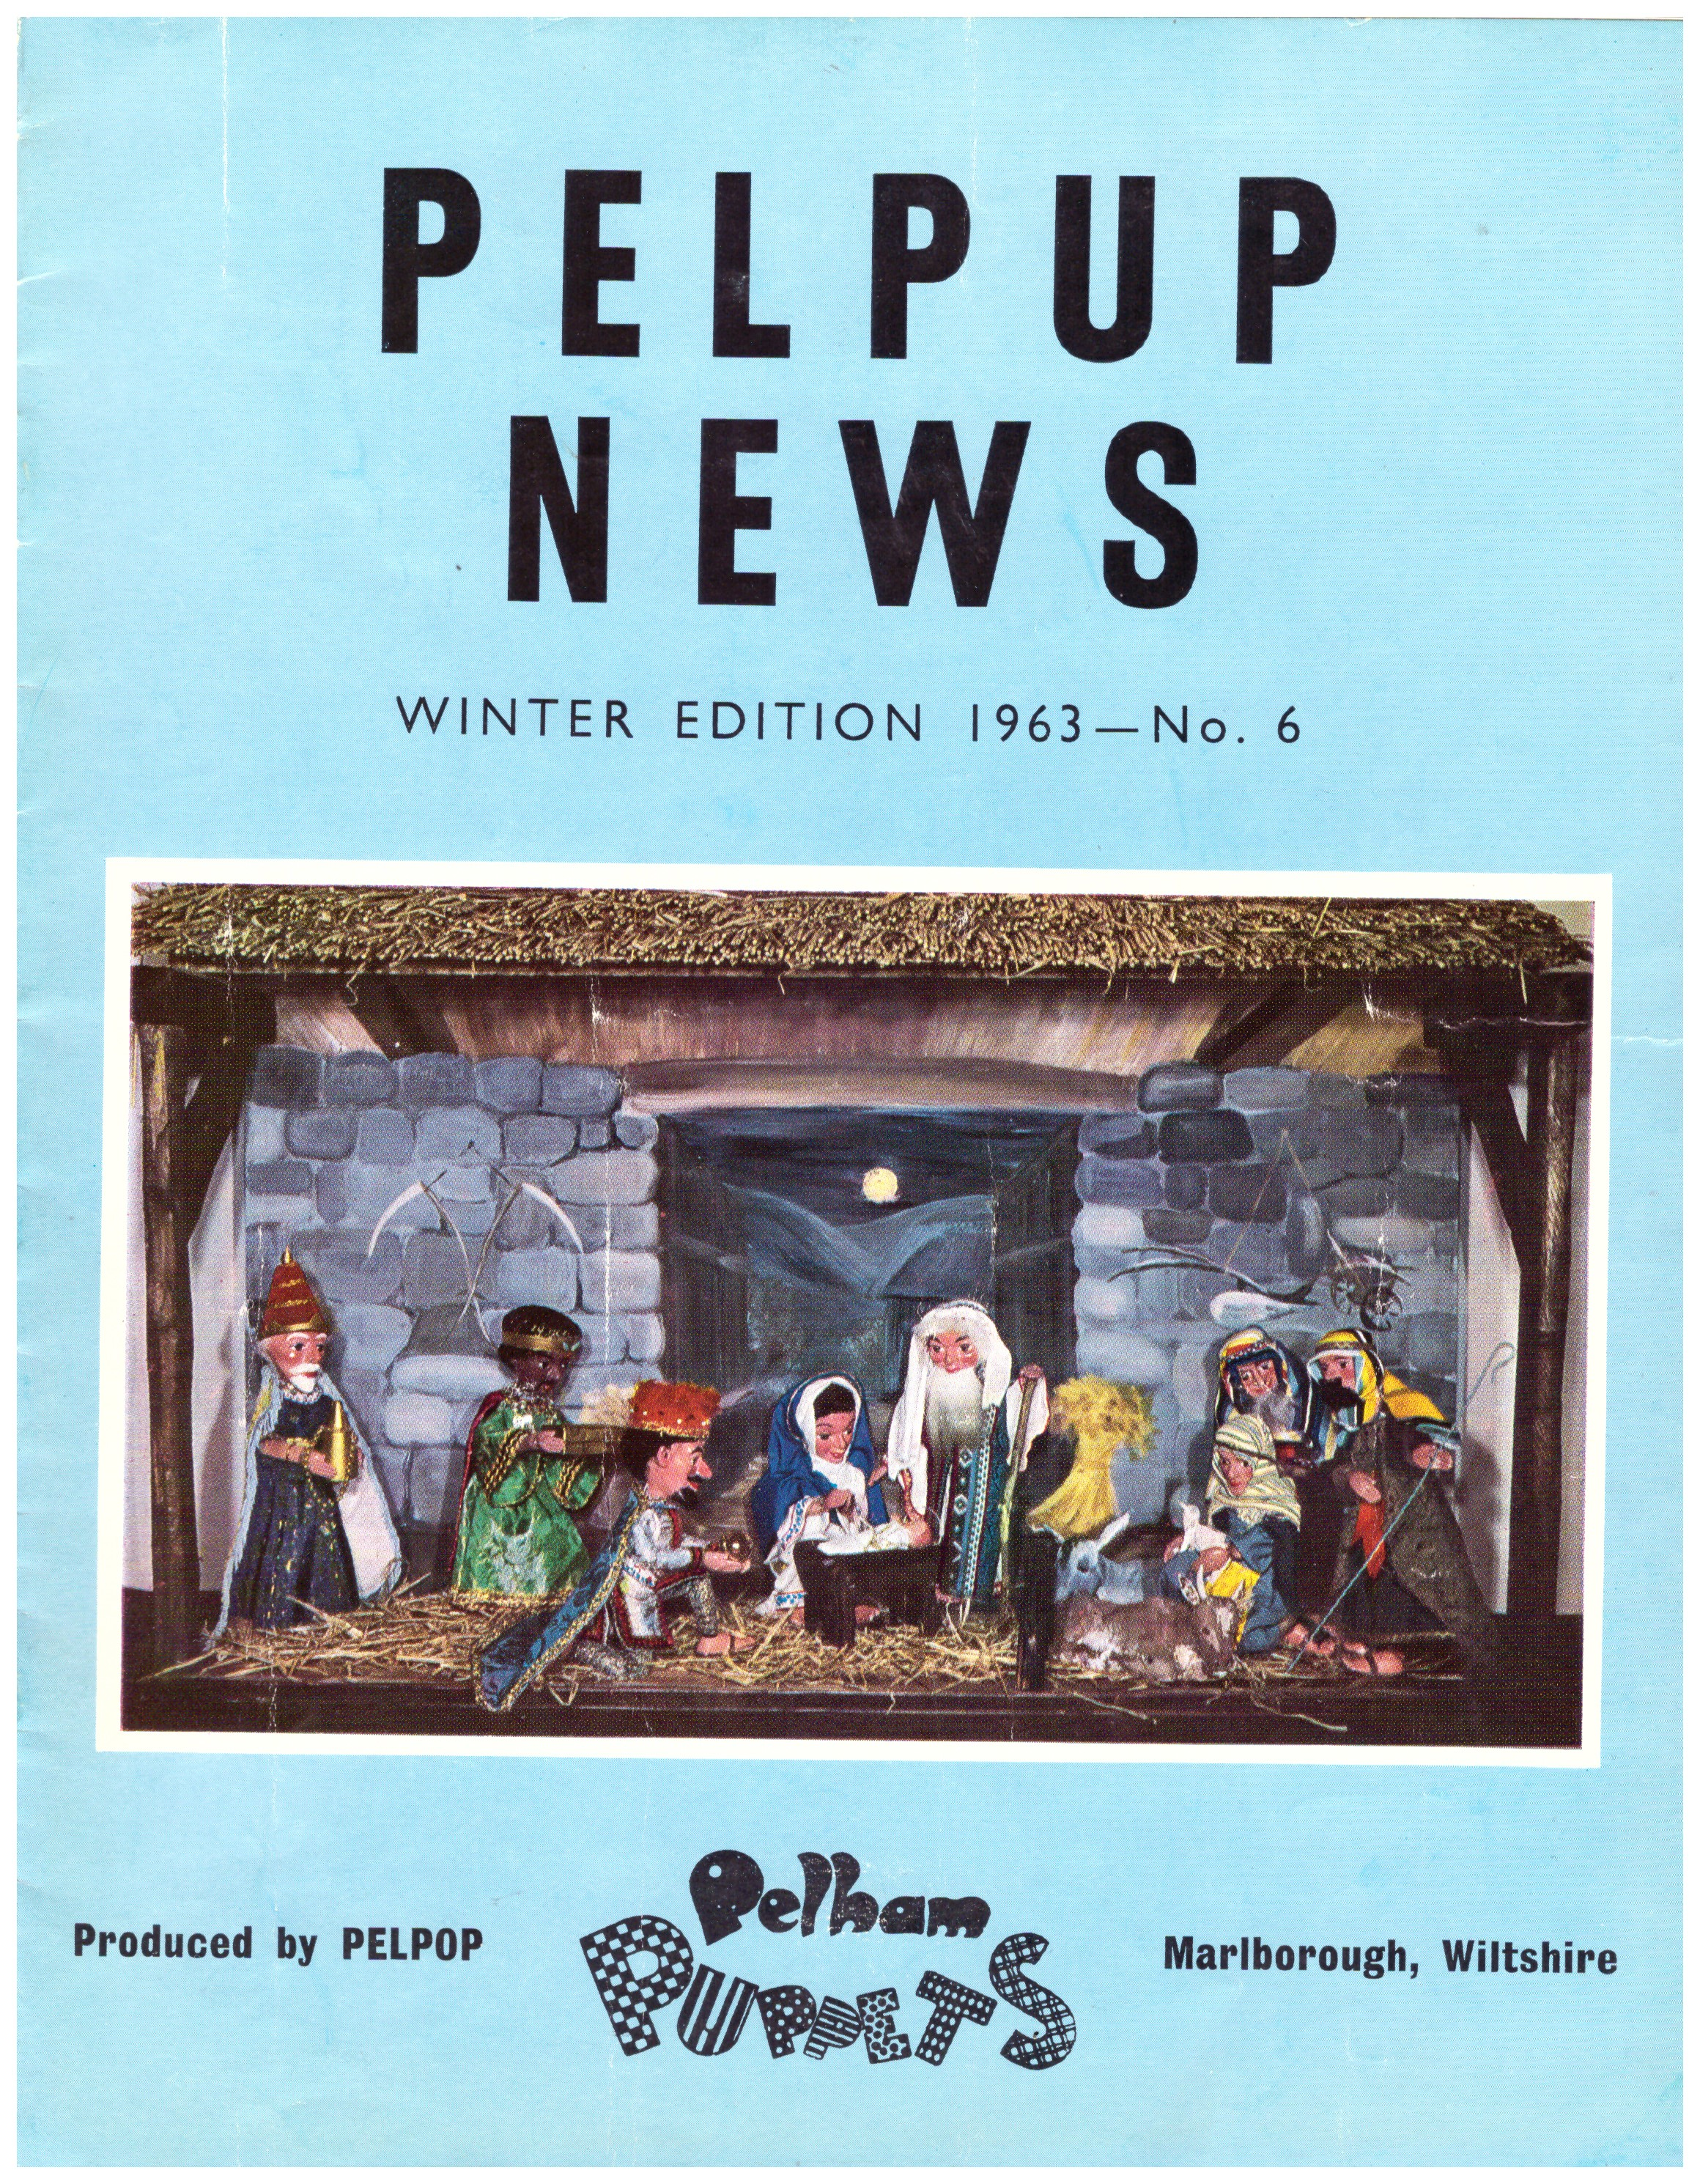 Winter Edition 1963 - Number 6